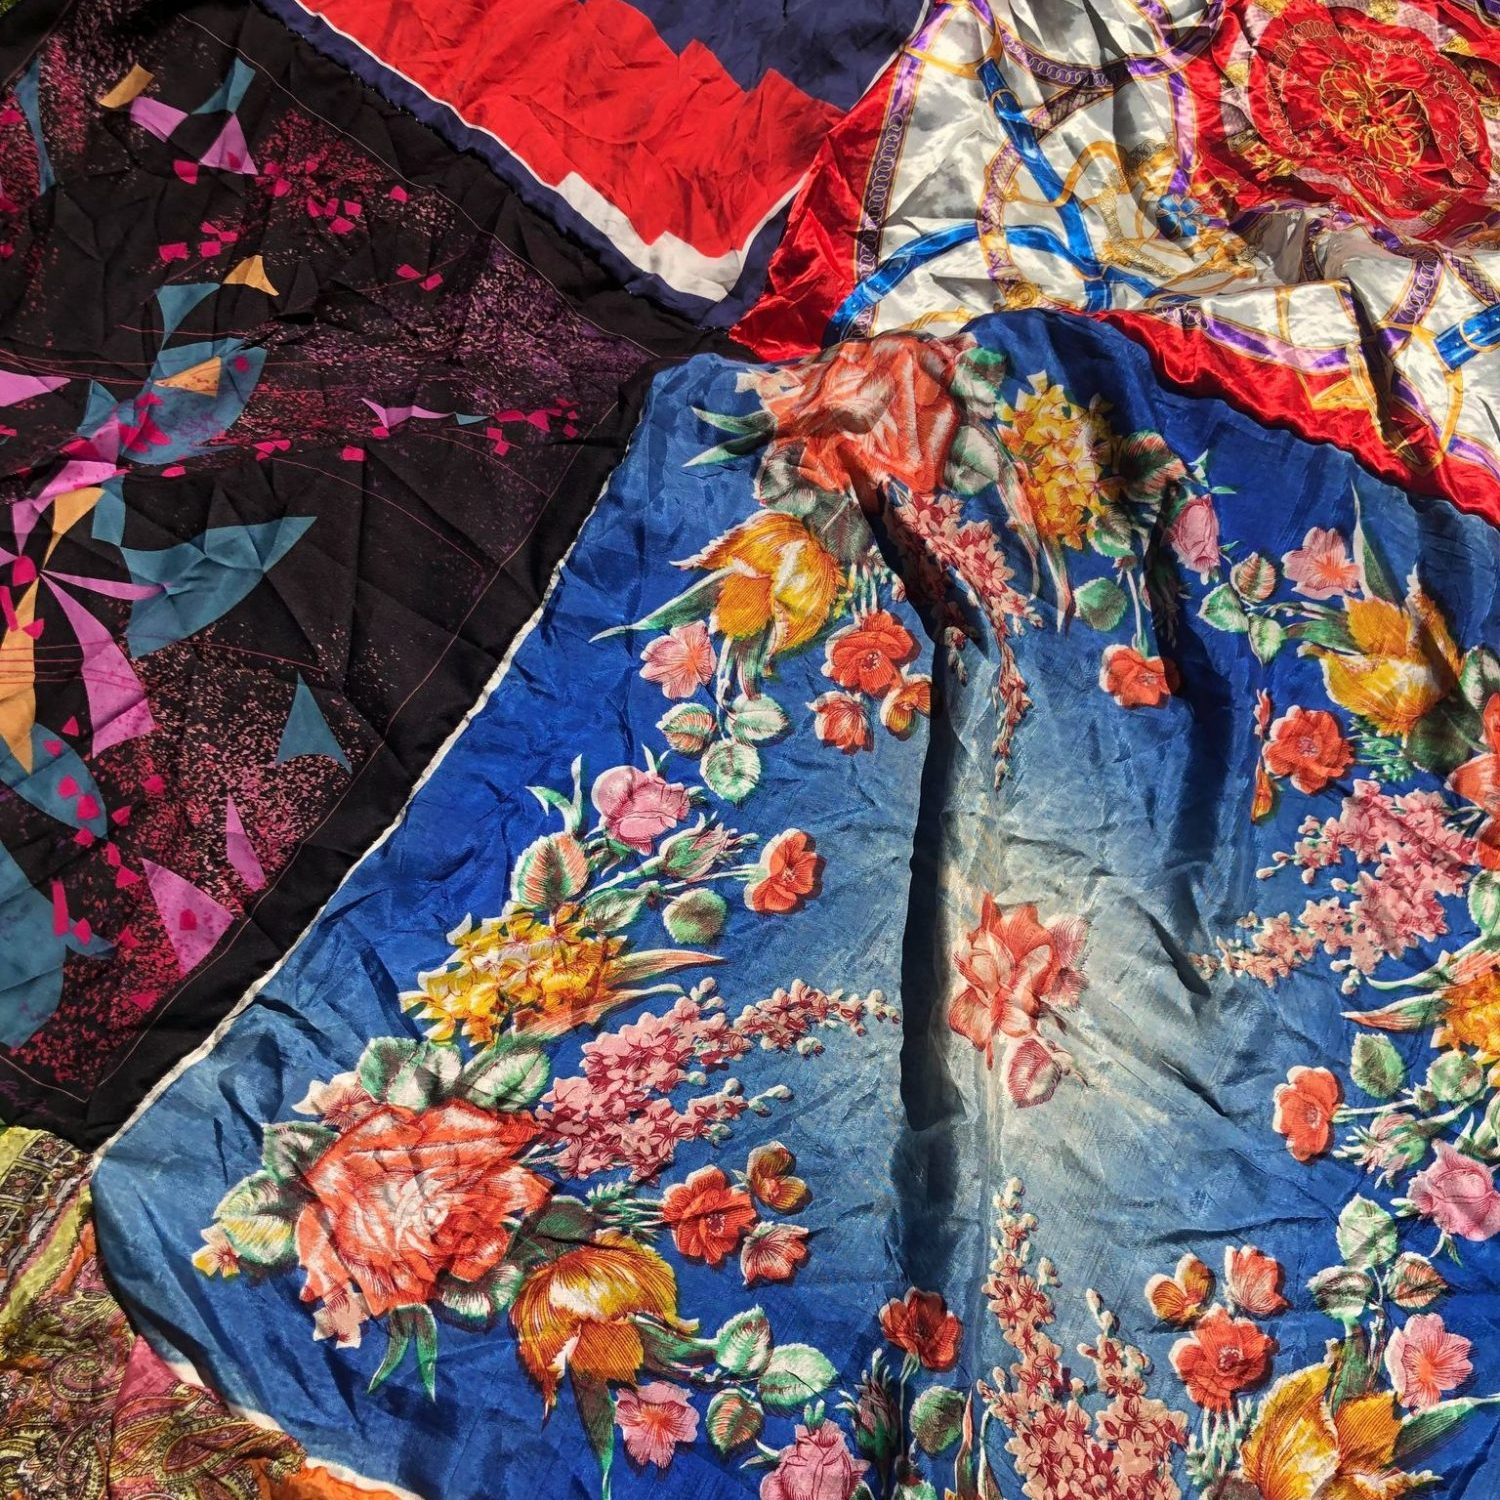 Floral fabrics and scarves